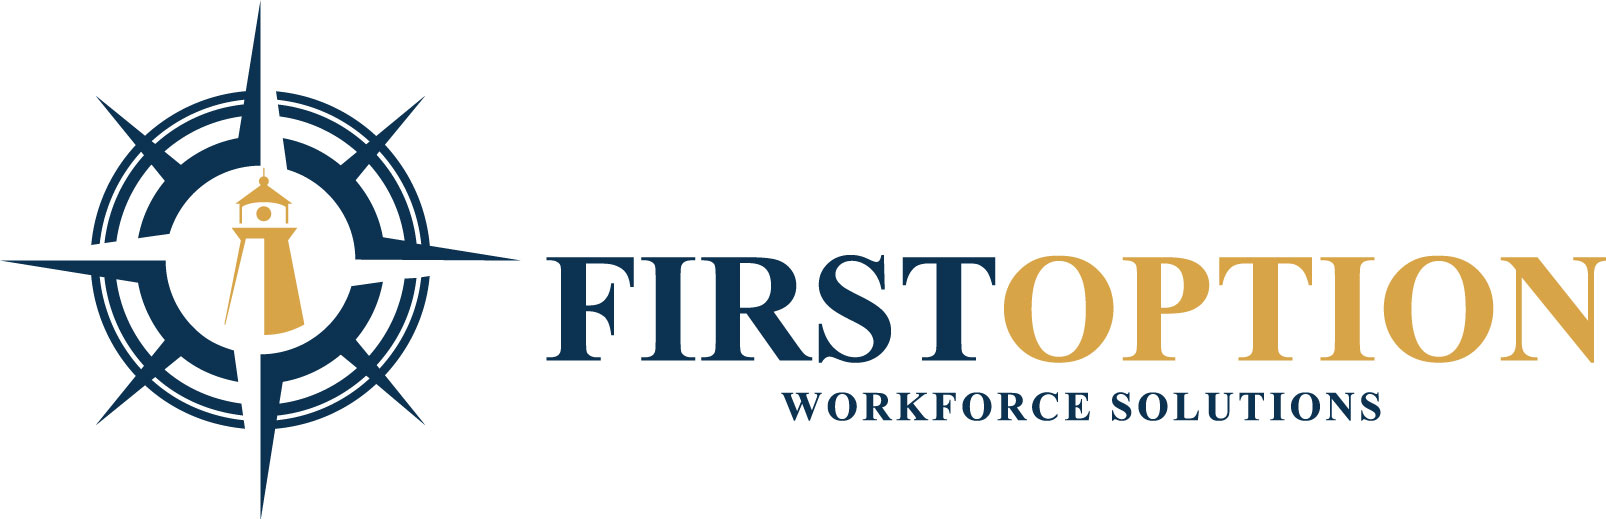 FirstOption Workforce Solutions